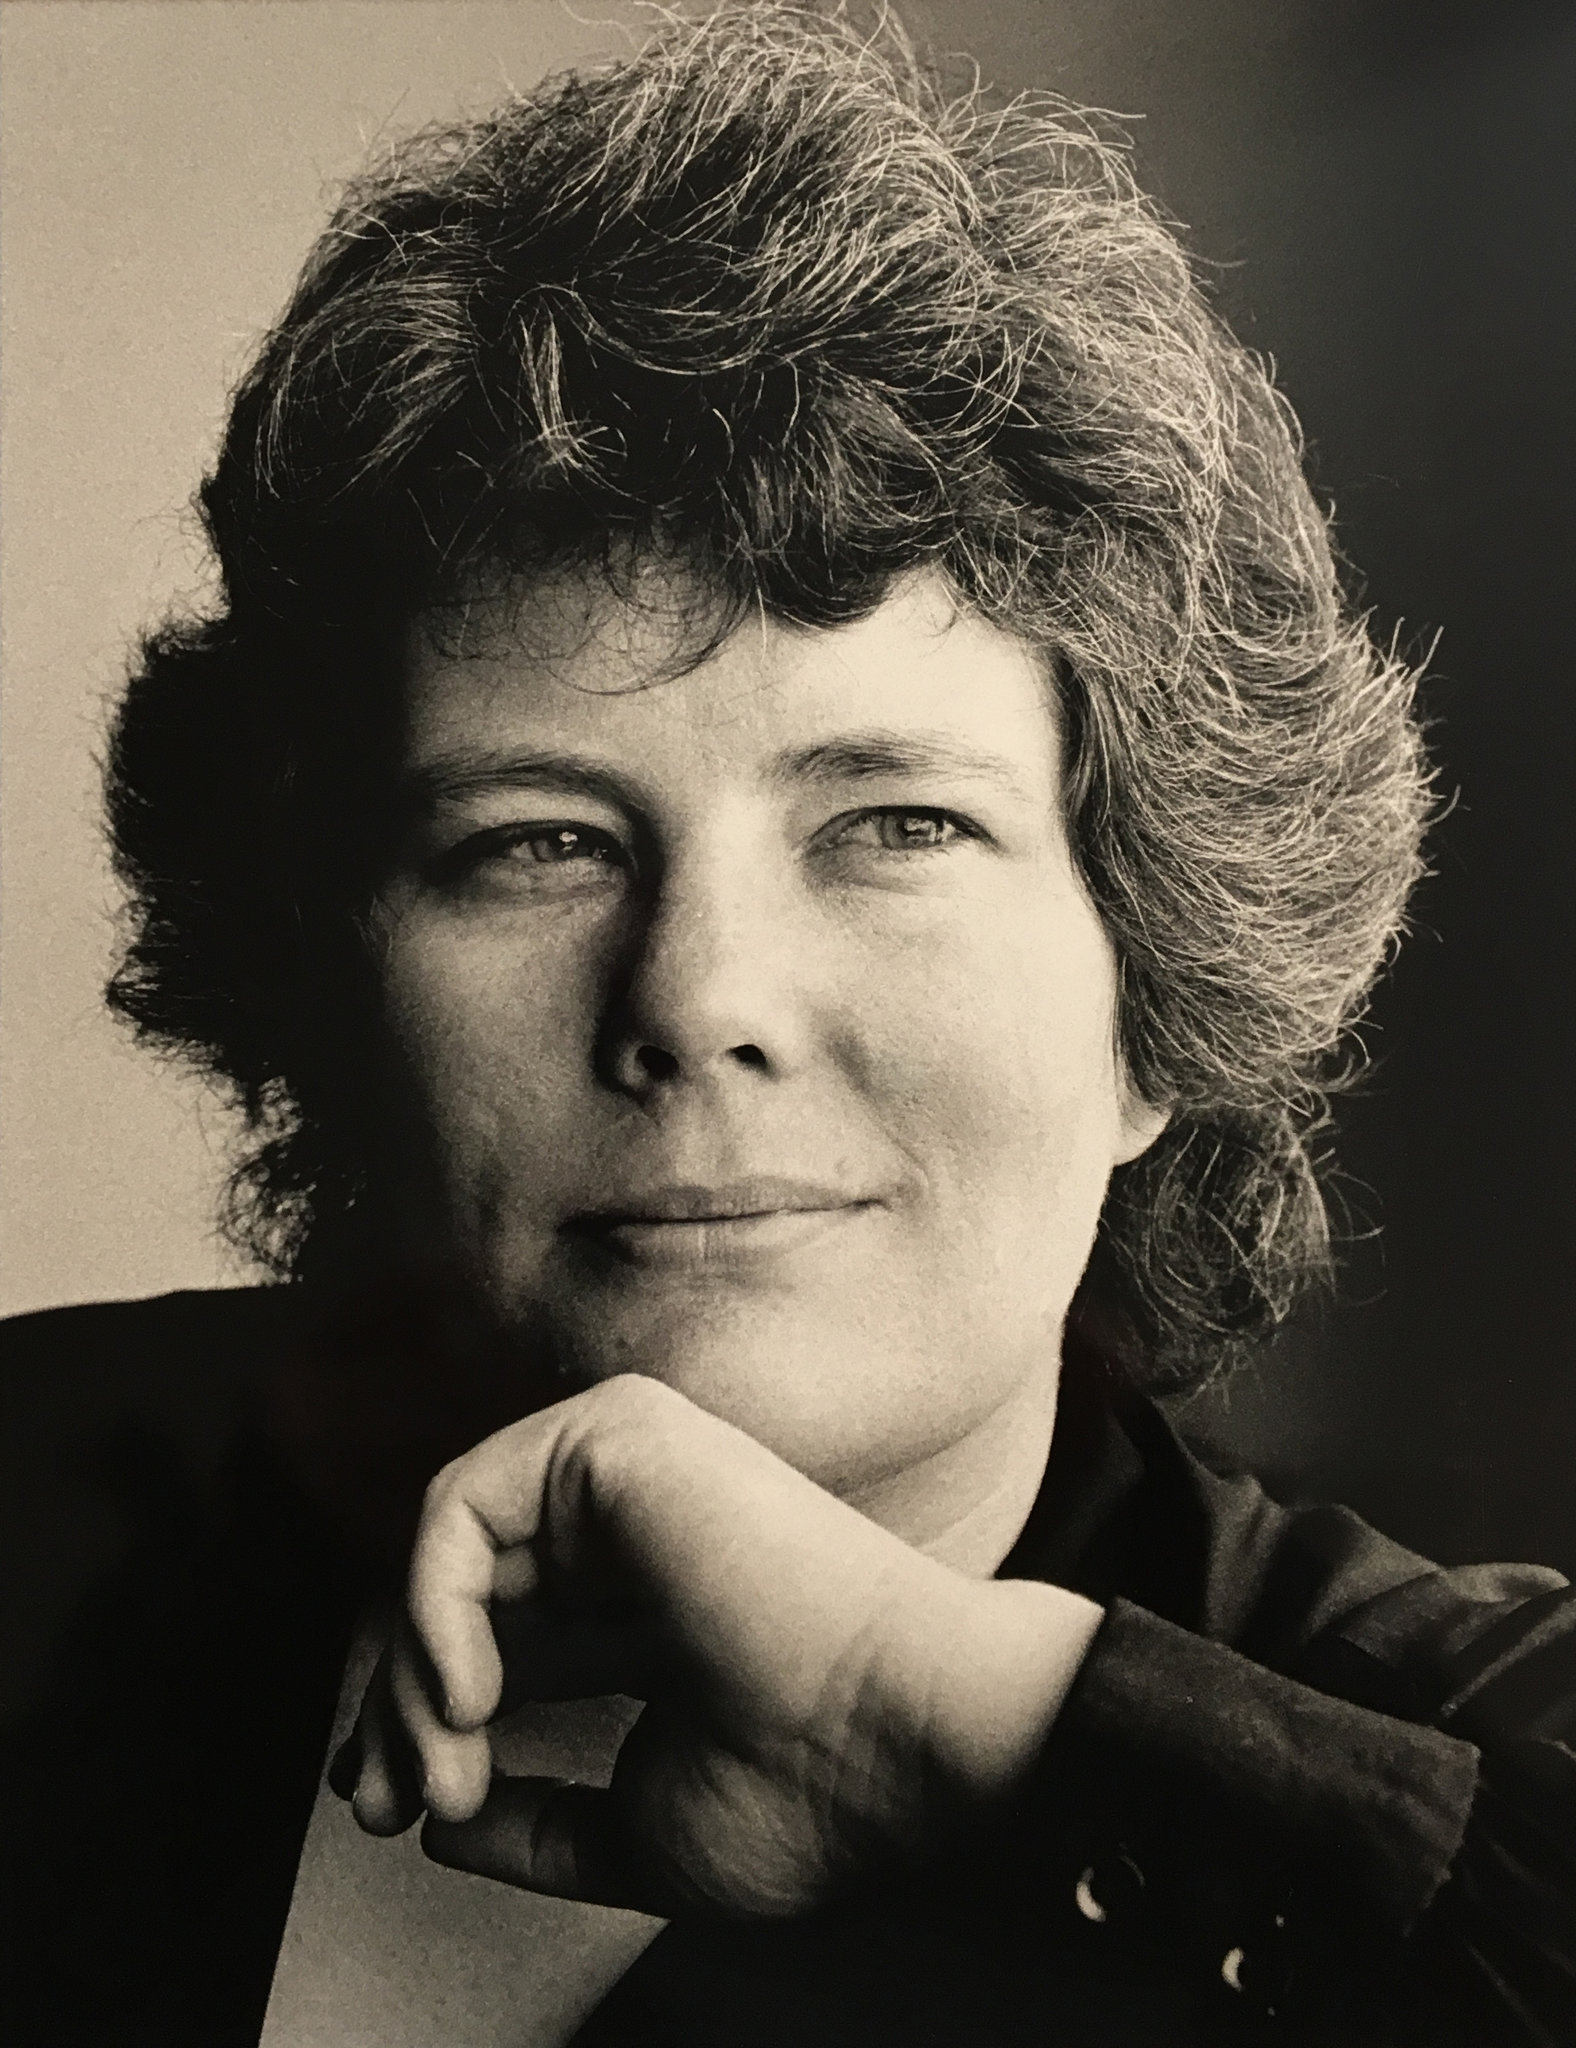 Photo courtesy of the New York Times  Author Vonda McIntyre died on April 1 at age 70.